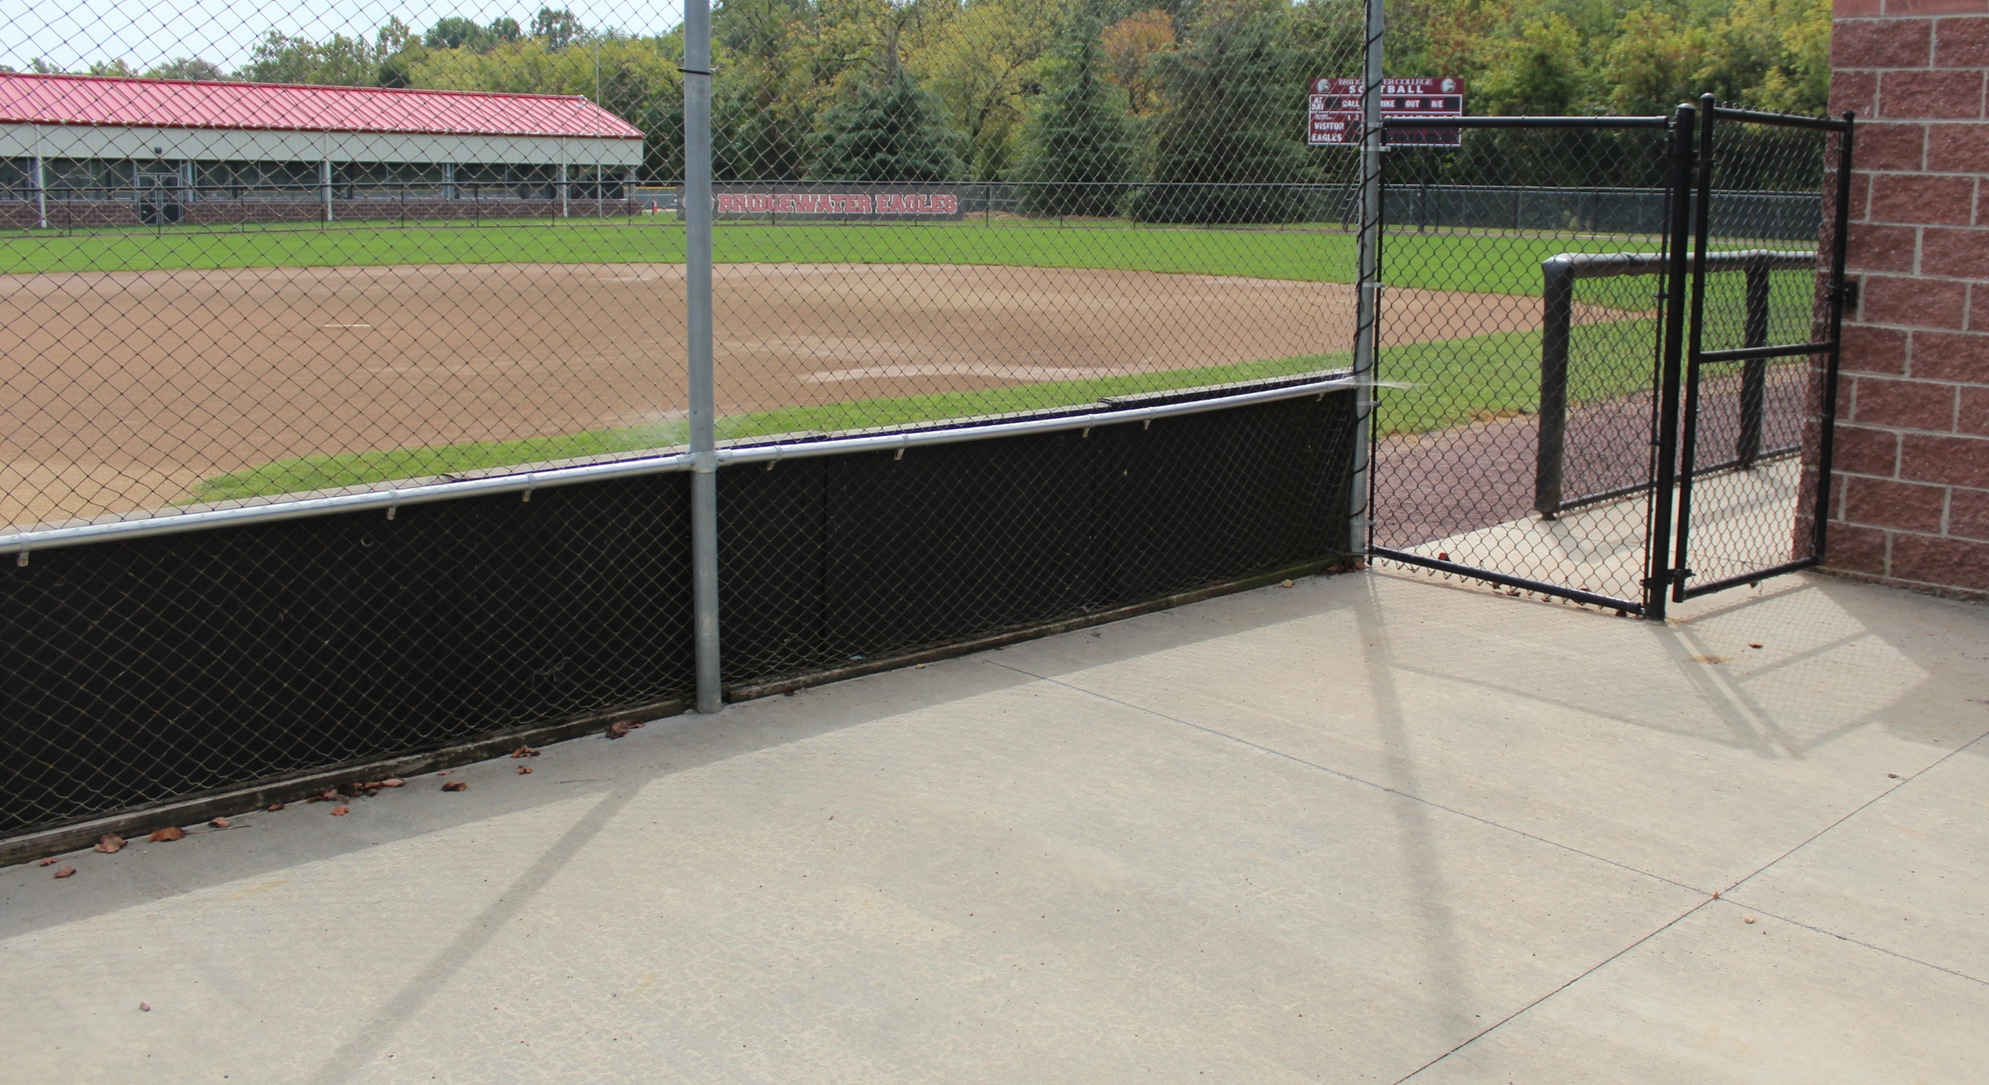 paved seating areas at softball